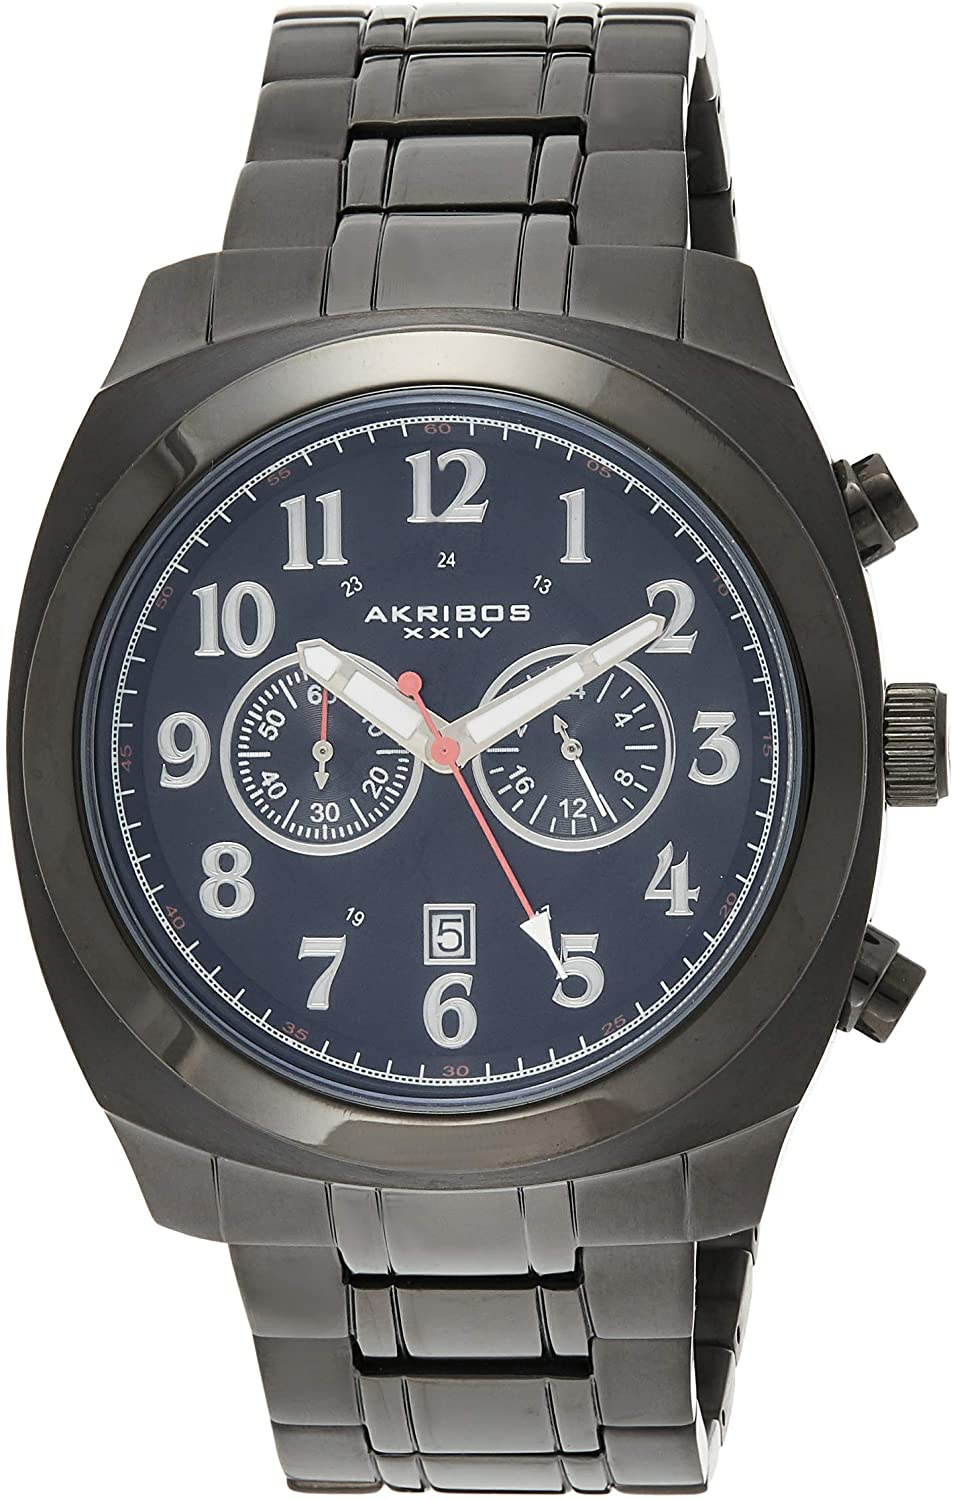 アクリボスXXIV 腕時計 メンズ 【送料無料】Akribos XXIV Men's 'Ultimate' Chronograph Watch - 2 Subdials and Date Window On Black Stainless Steel Pillow-Cut Bracelet - AK624BKアクリボスXXIV 腕時計 メンズ